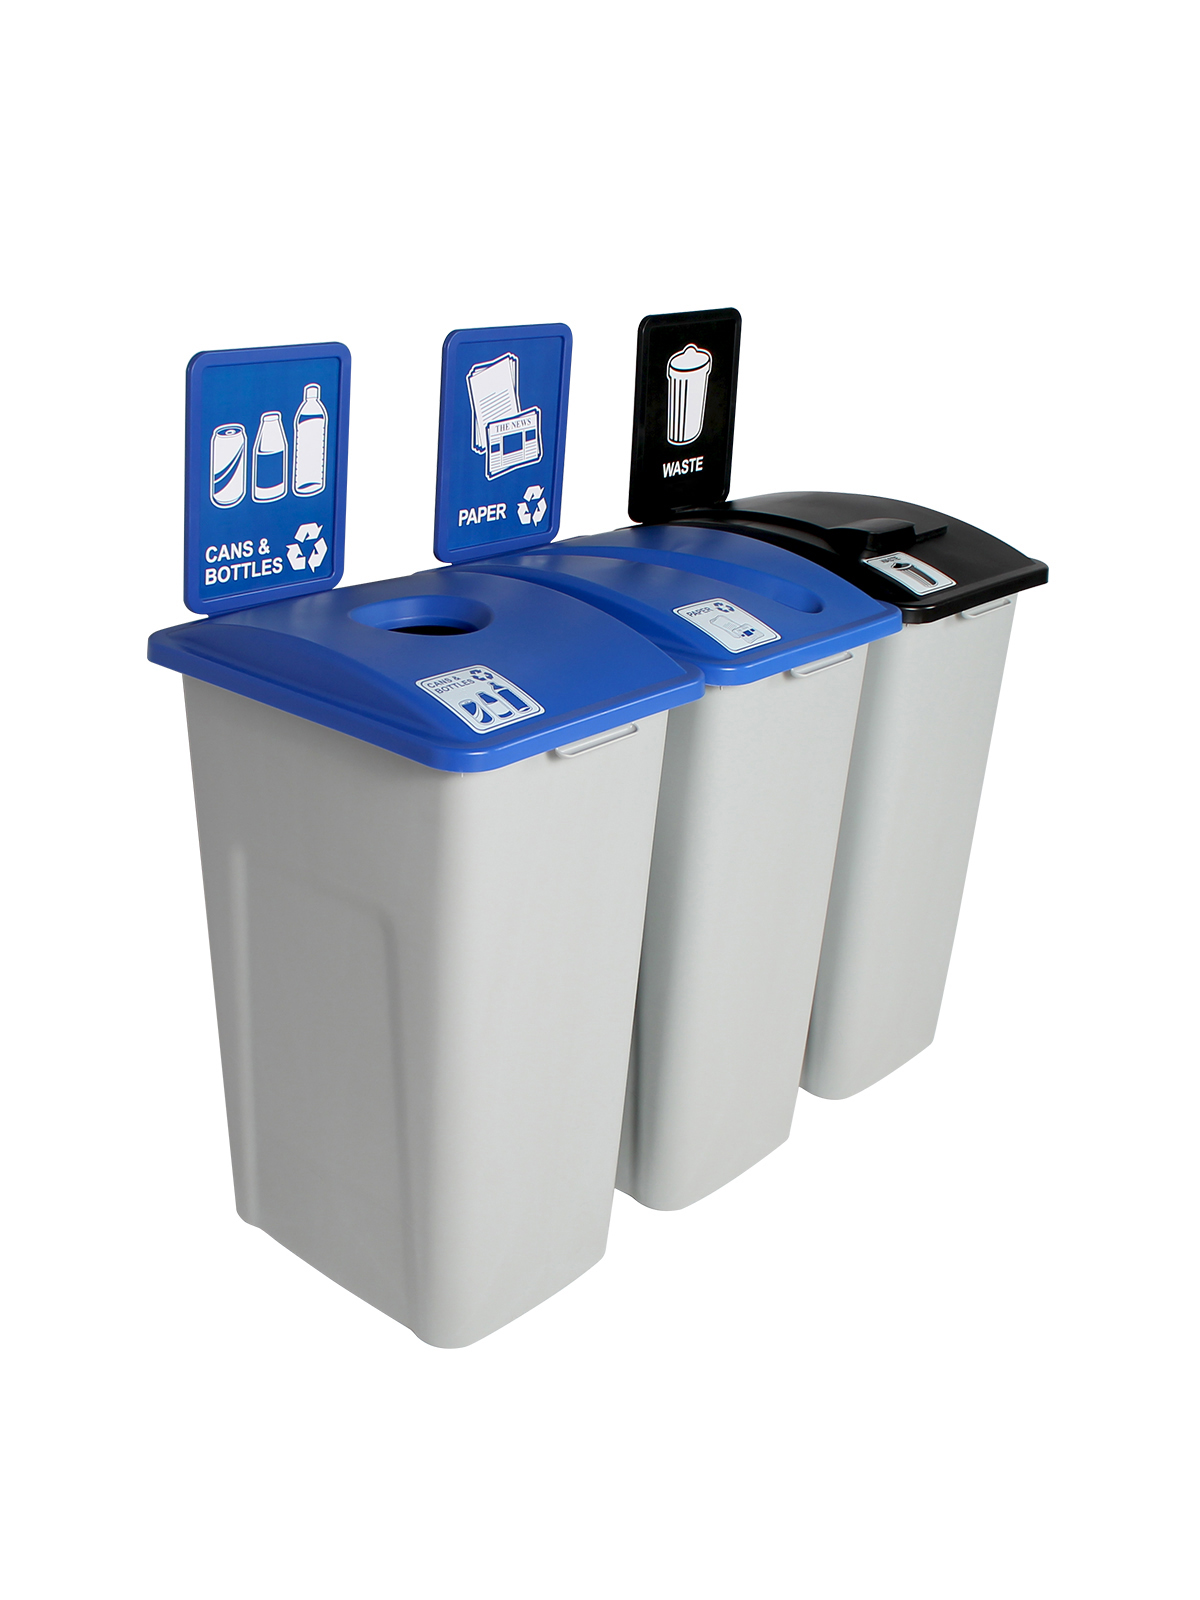 WASTE WATCHER XL - Triple - Cans & Bottles-Paper-Waste - Circle-Slot-Solid Lift - Grey-Blue-Blue-Black